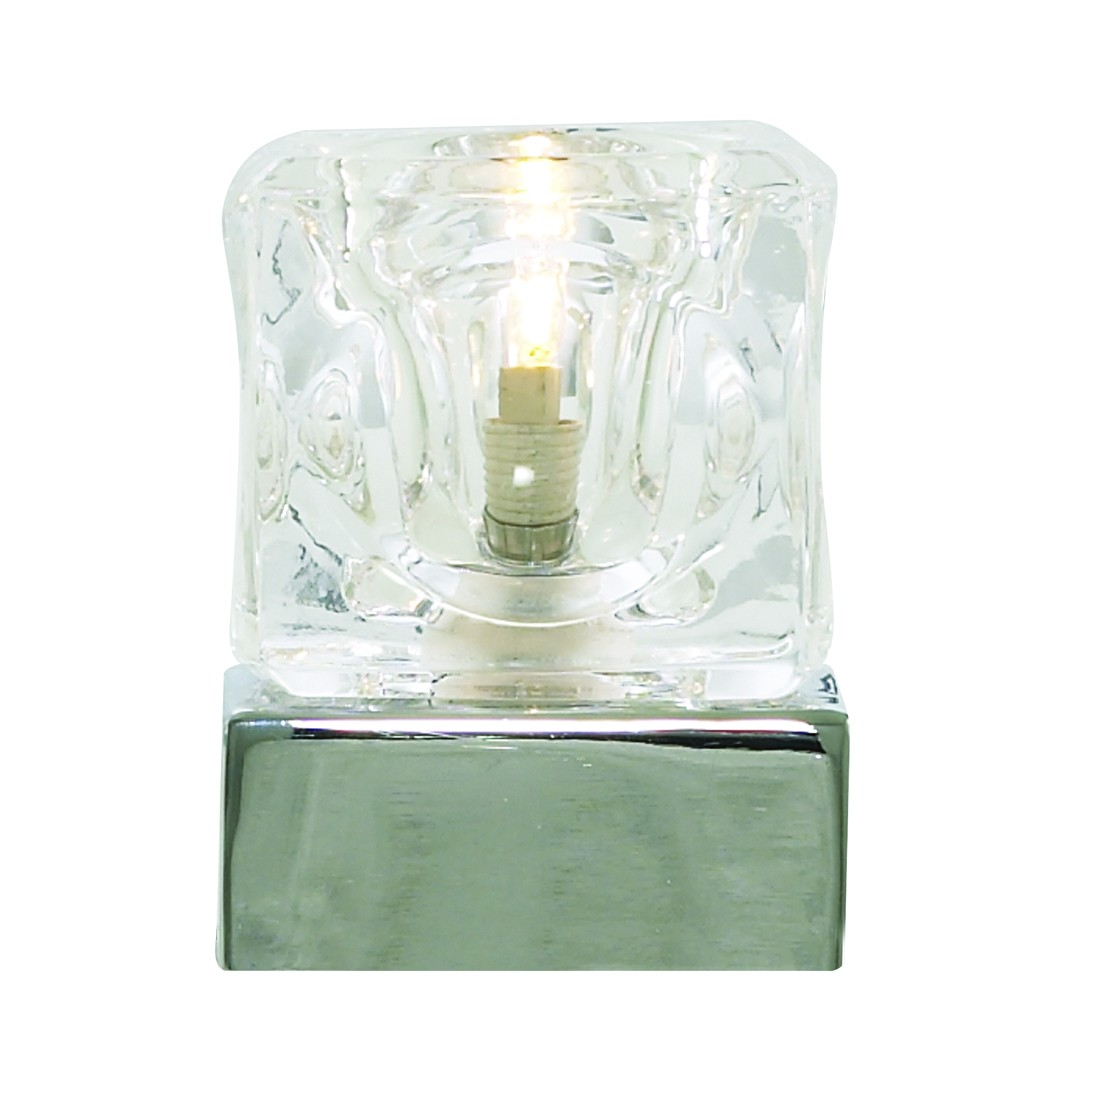 ice cube touch table lamp with clear glass shade 4471cc stanways. Black Bedroom Furniture Sets. Home Design Ideas